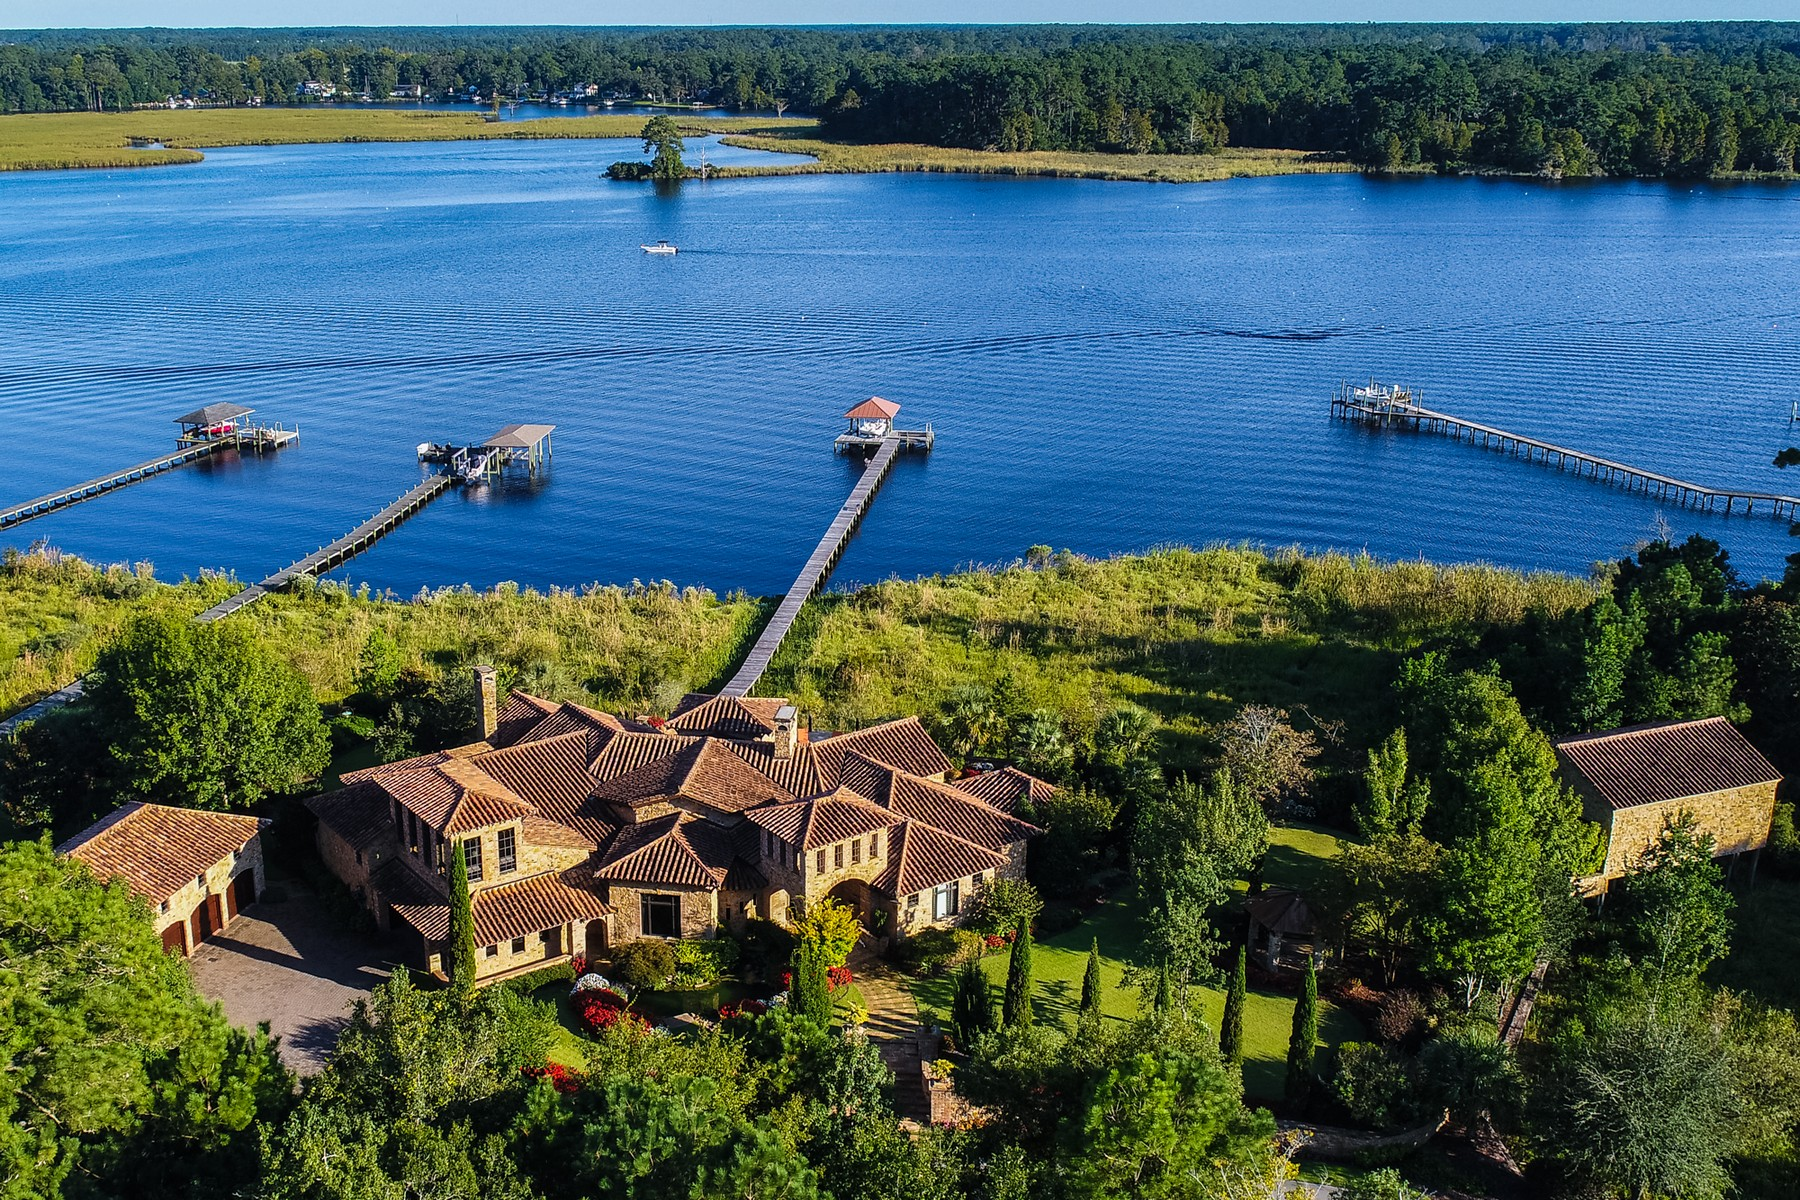 Single Family Home for Sale at A Custom Designed Tuscan Estate Awaits You 106 Allen Drive, New Bern, North Carolina, 28562 United States